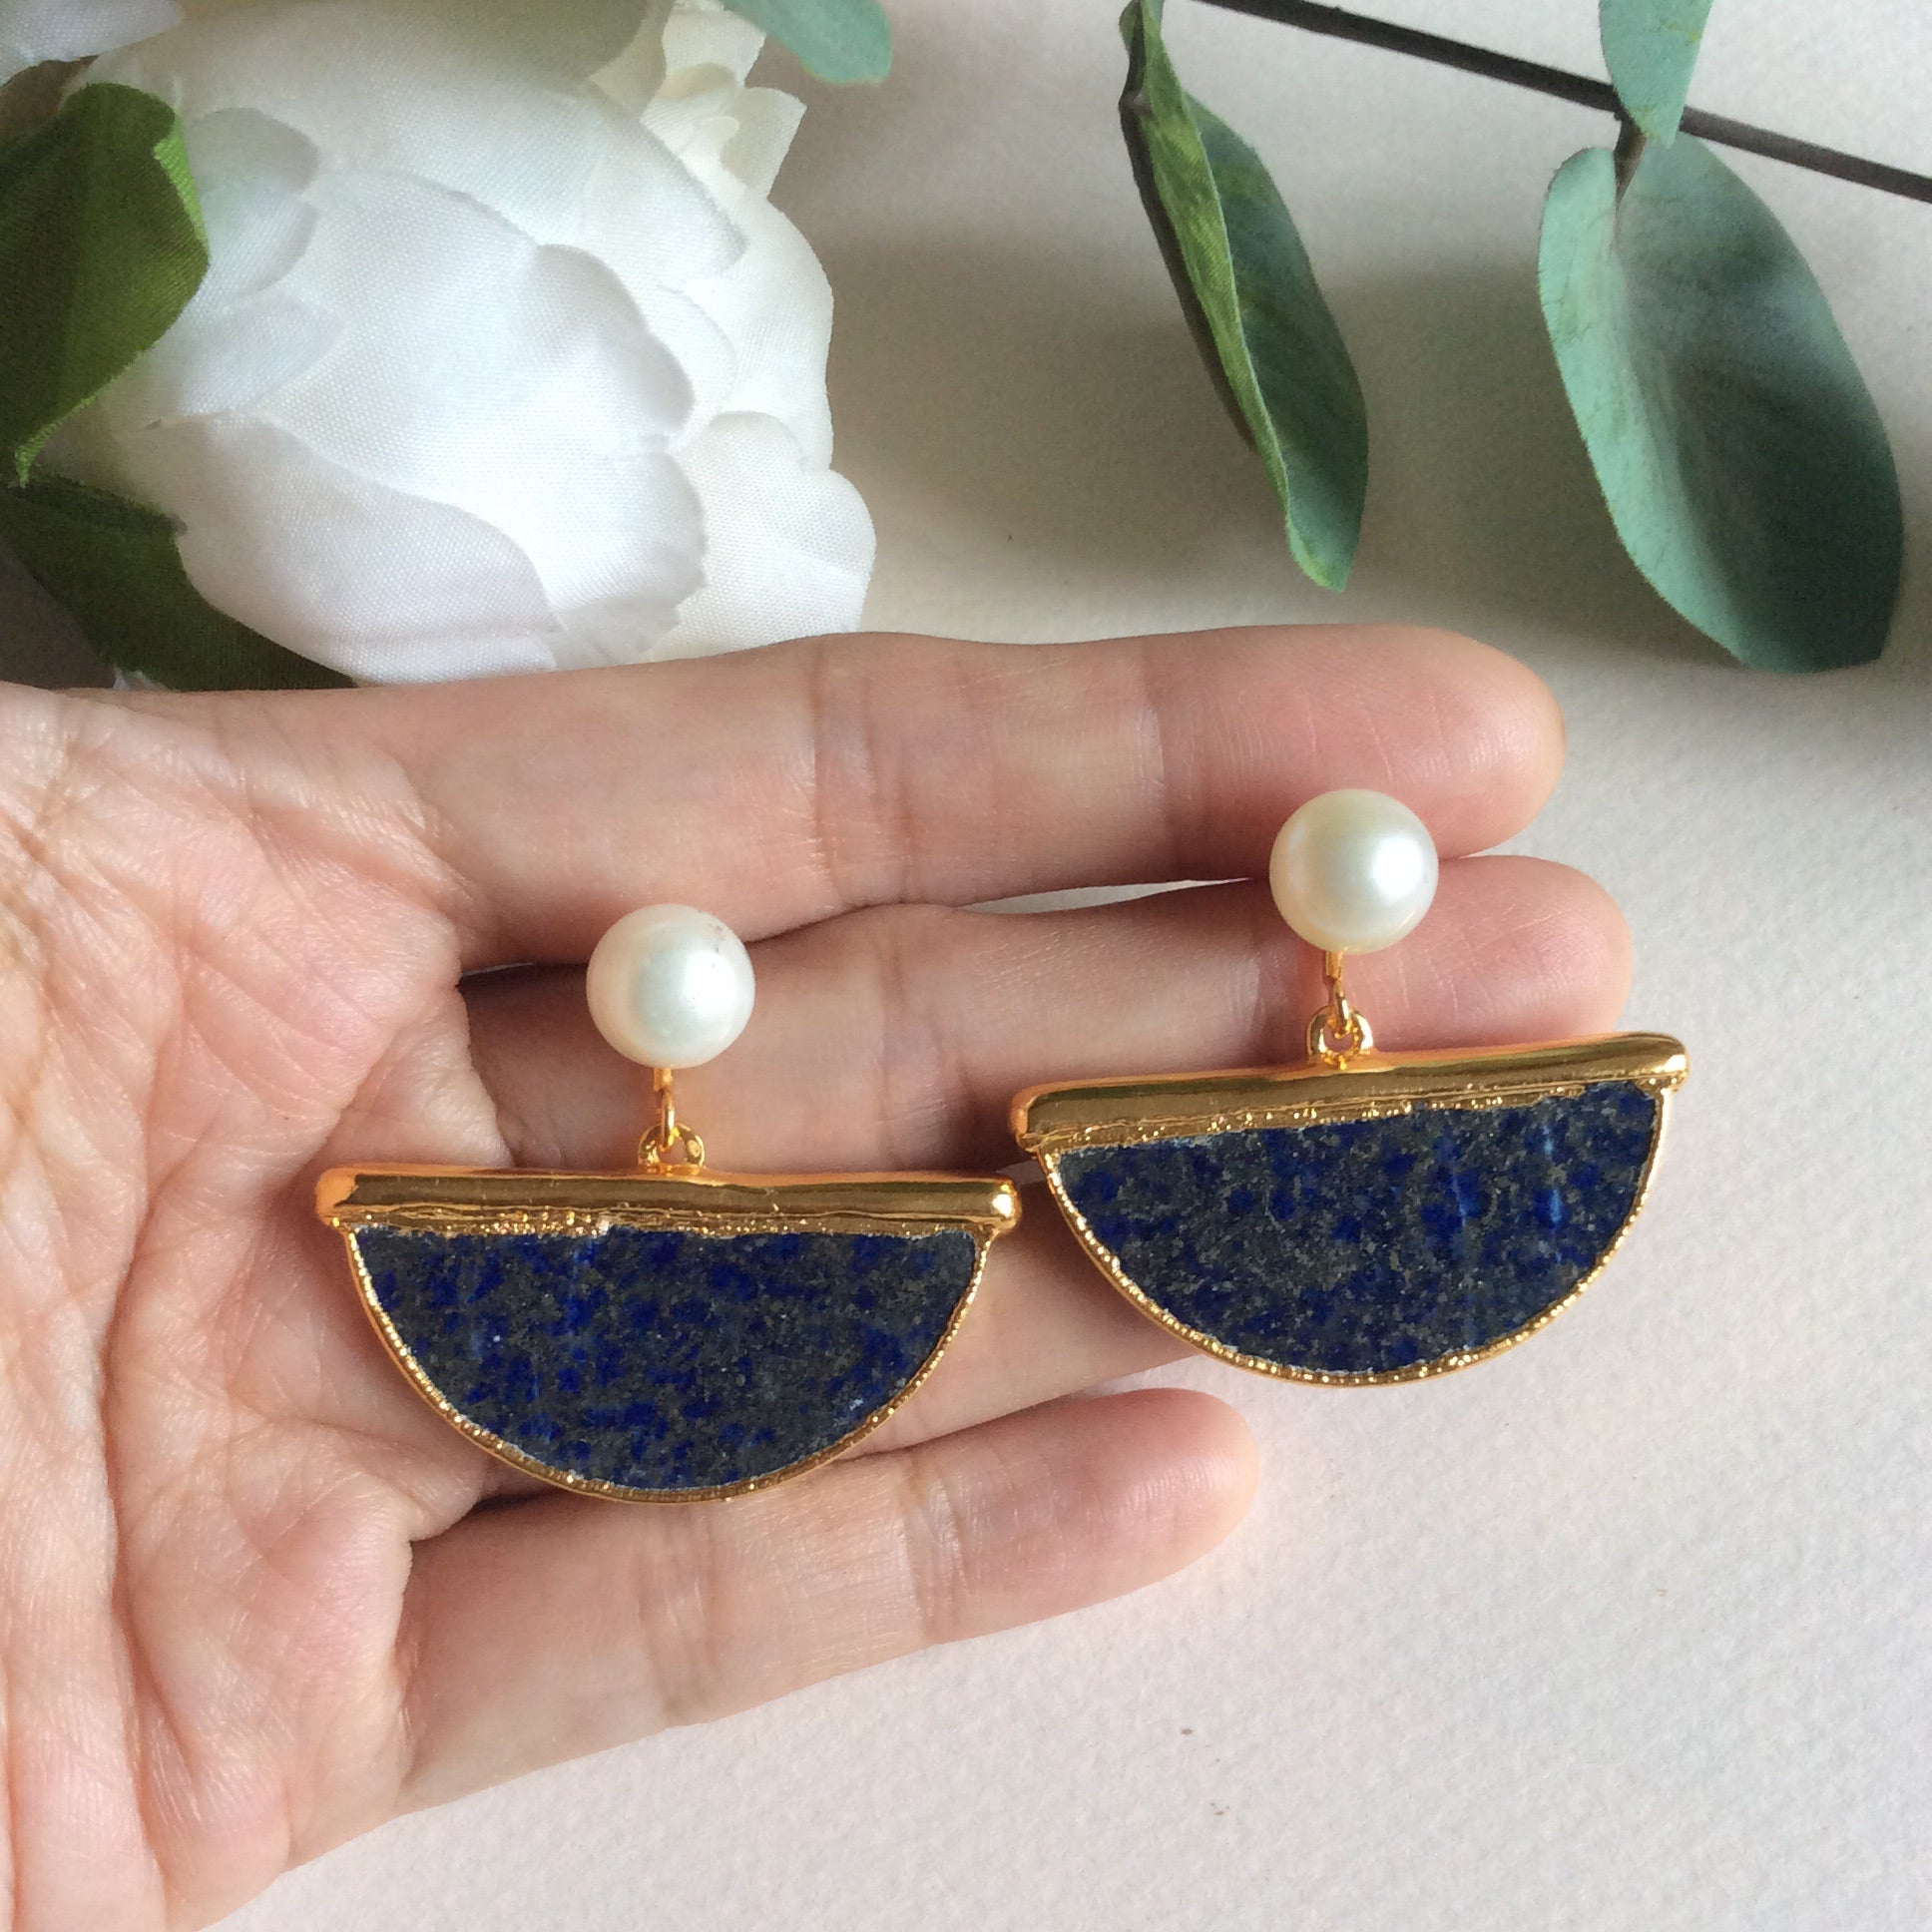 Lapis lazuli half moon earrings with nephrite jade ropetwist studs